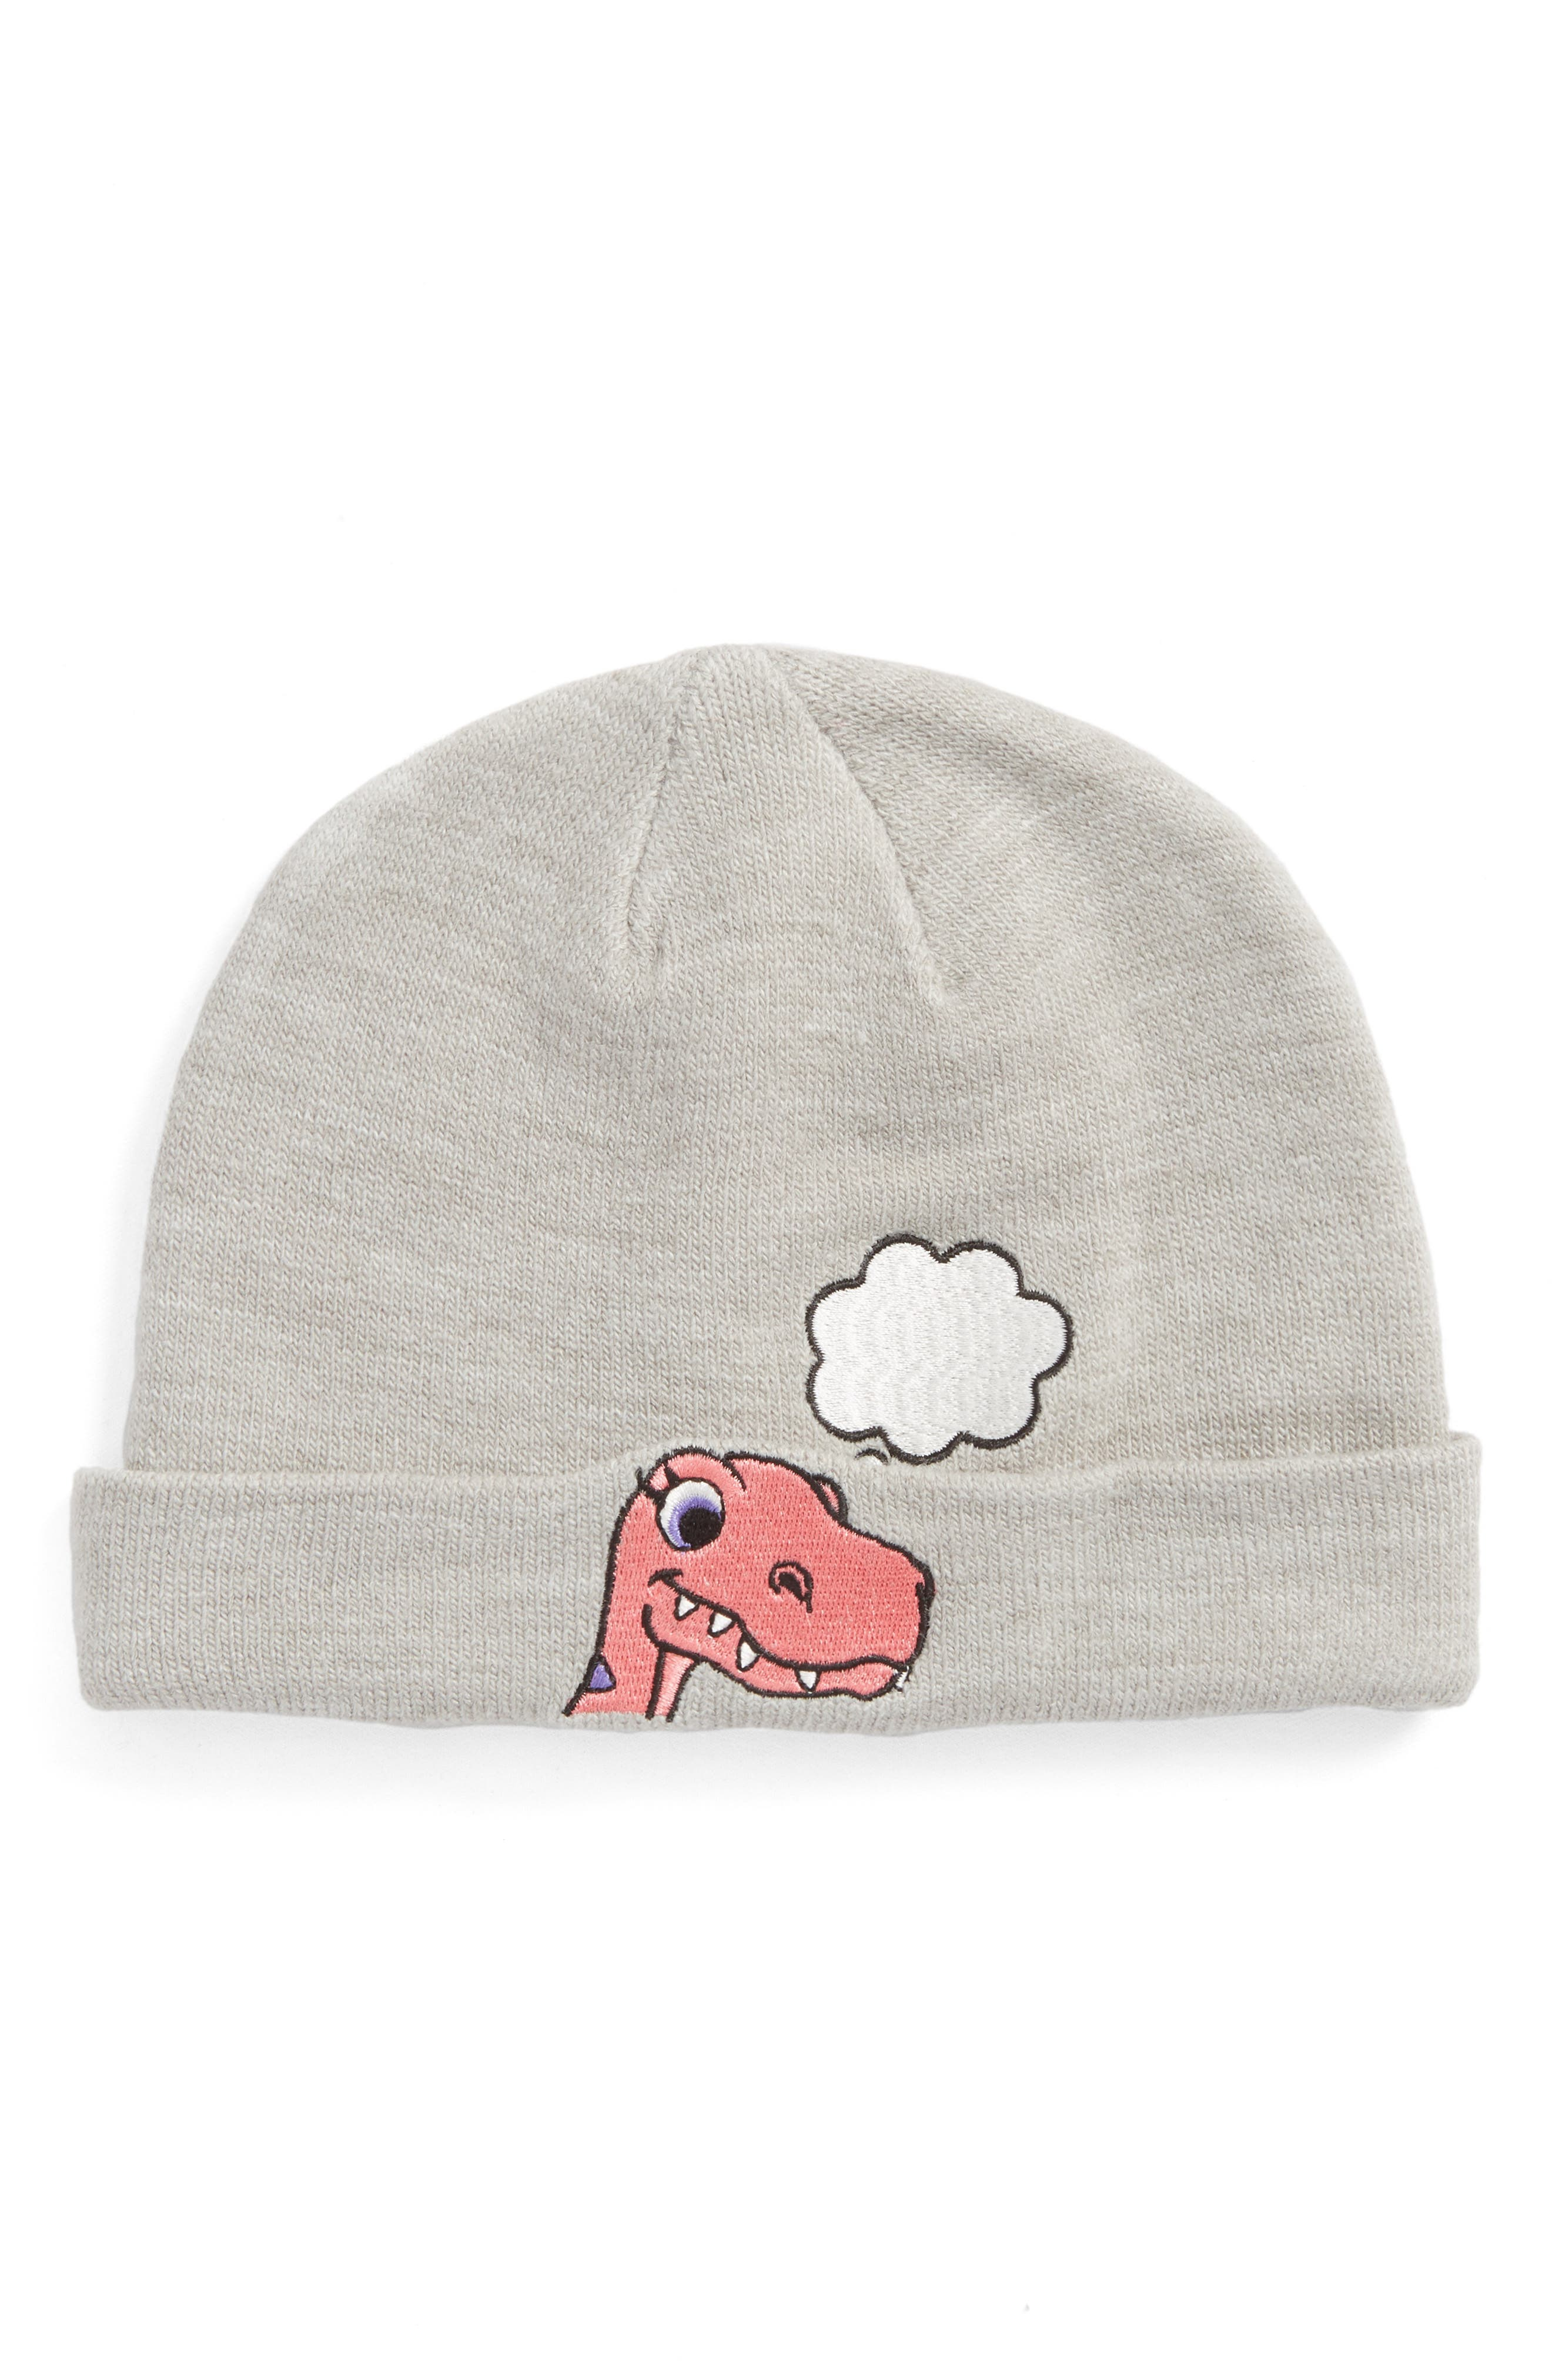 Capelli of New York Brainstorming Dino Beanie,                         Main,                         color, 028